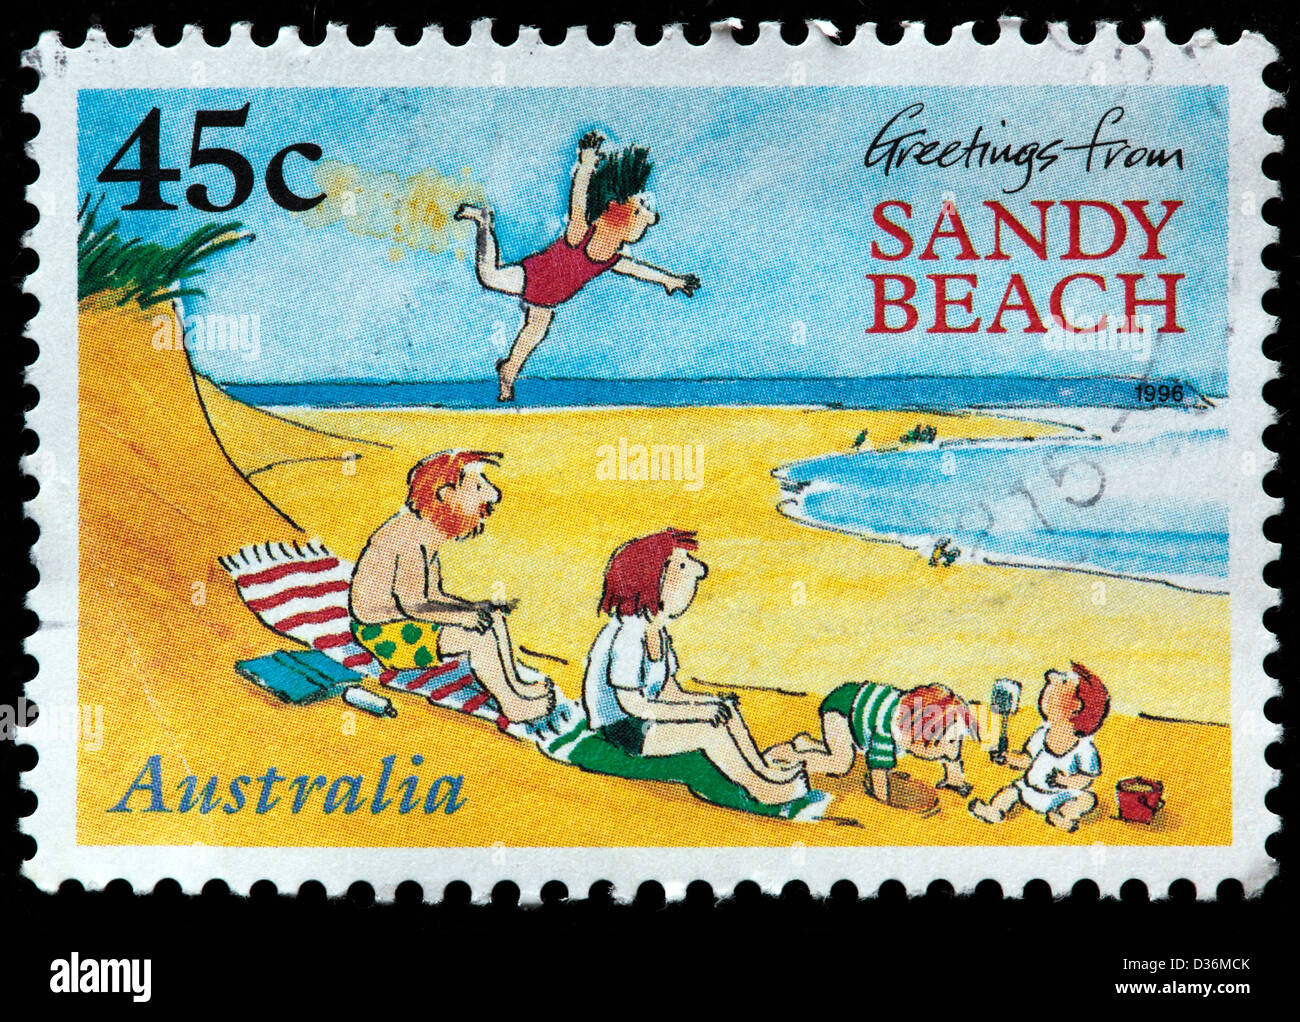 Greetings from sandy beach book cover postage stamp australia greetings from sandy beach book cover postage stamp australia 1996 m4hsunfo